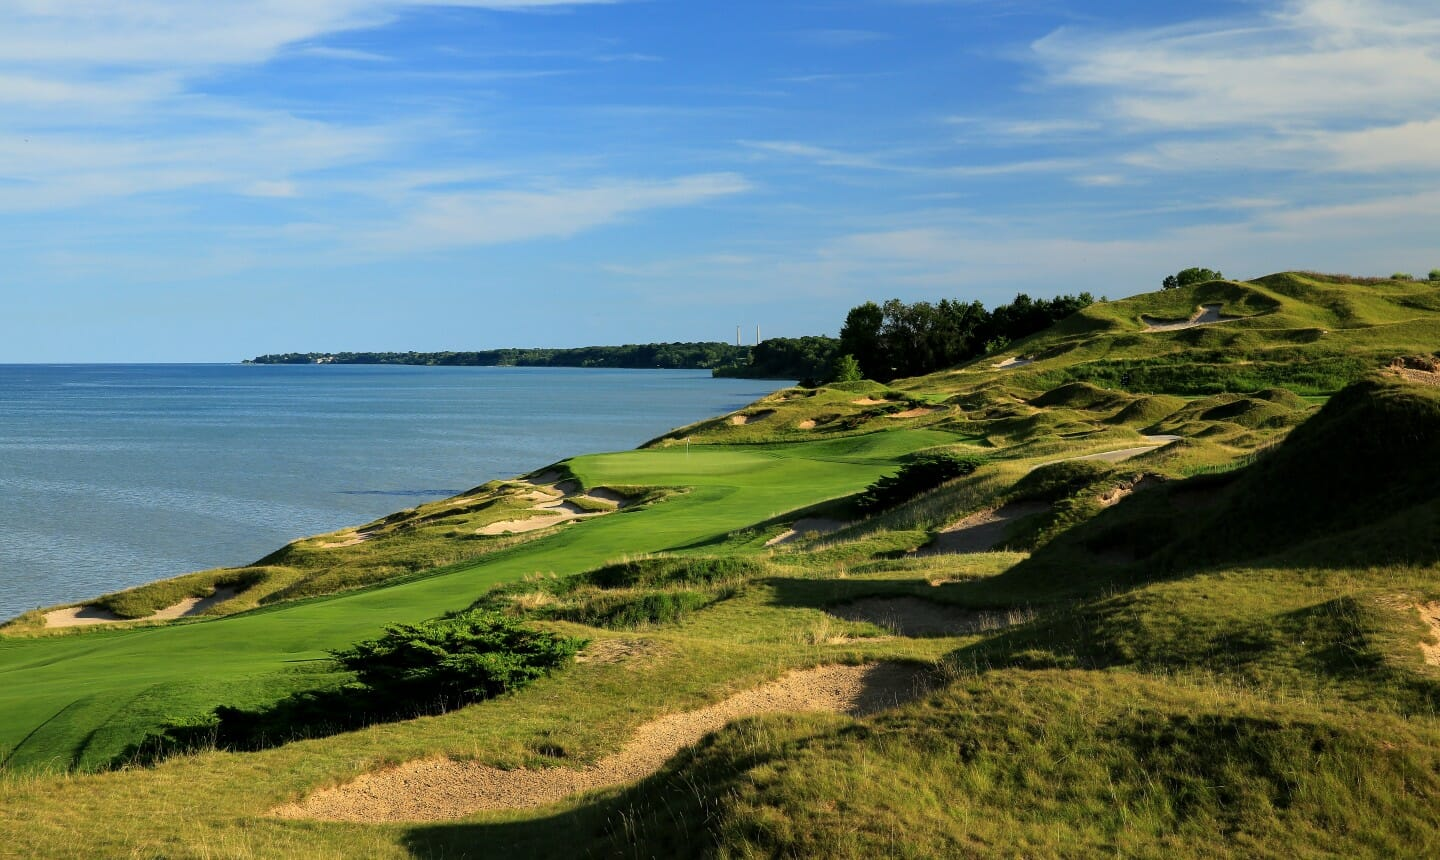 Image of the 4th hole on the Straits golf course,, Destination Kohler, Wisconsin, USA